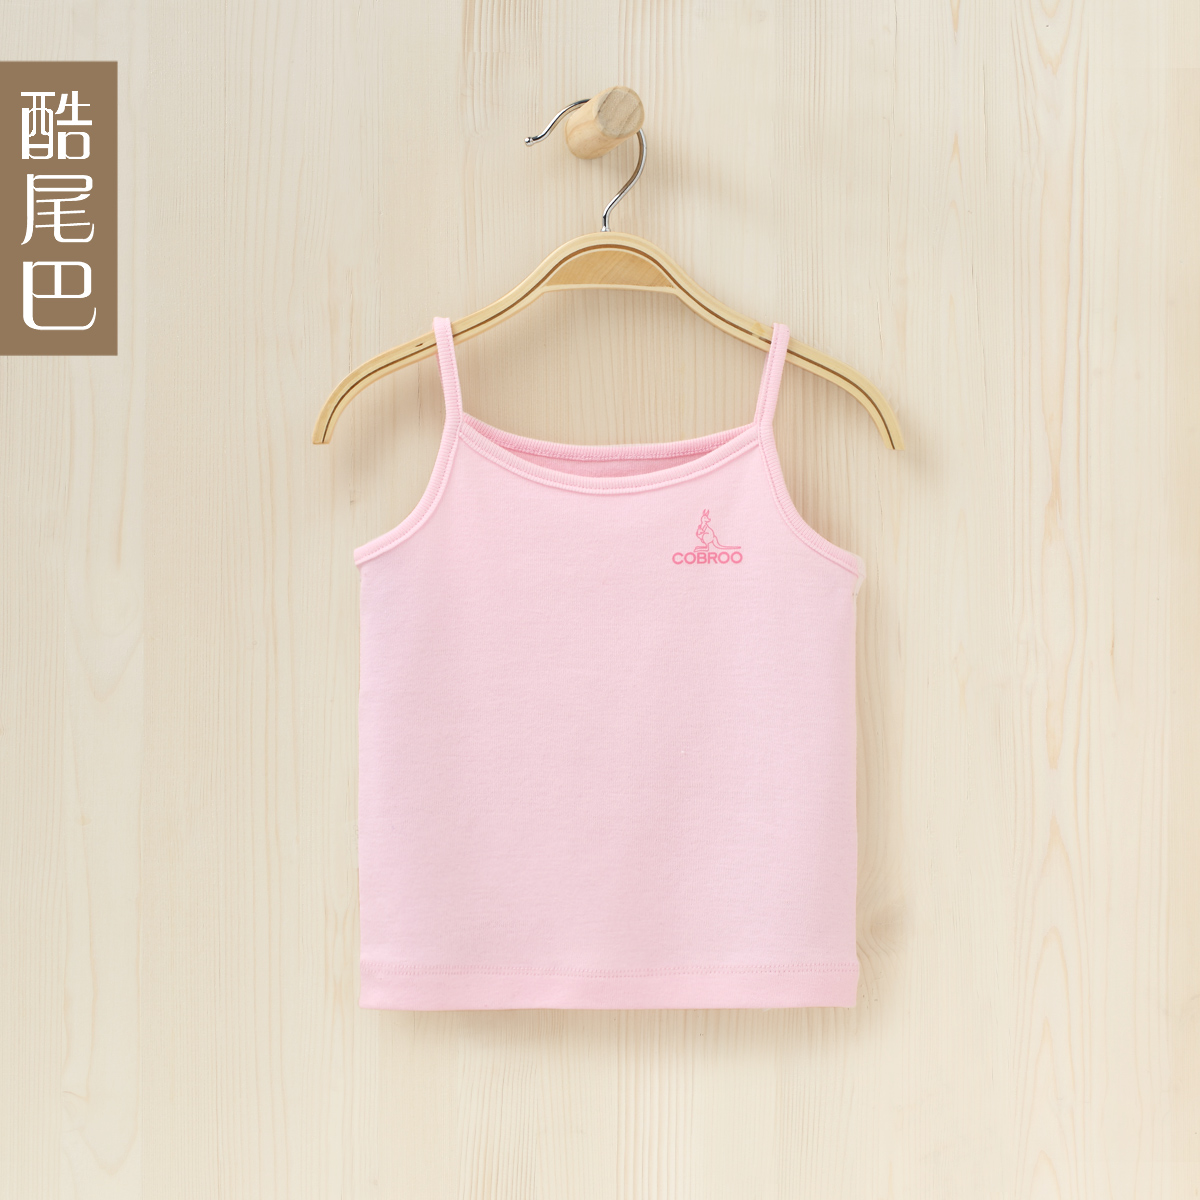 Color classification: Co-ny410005 pink